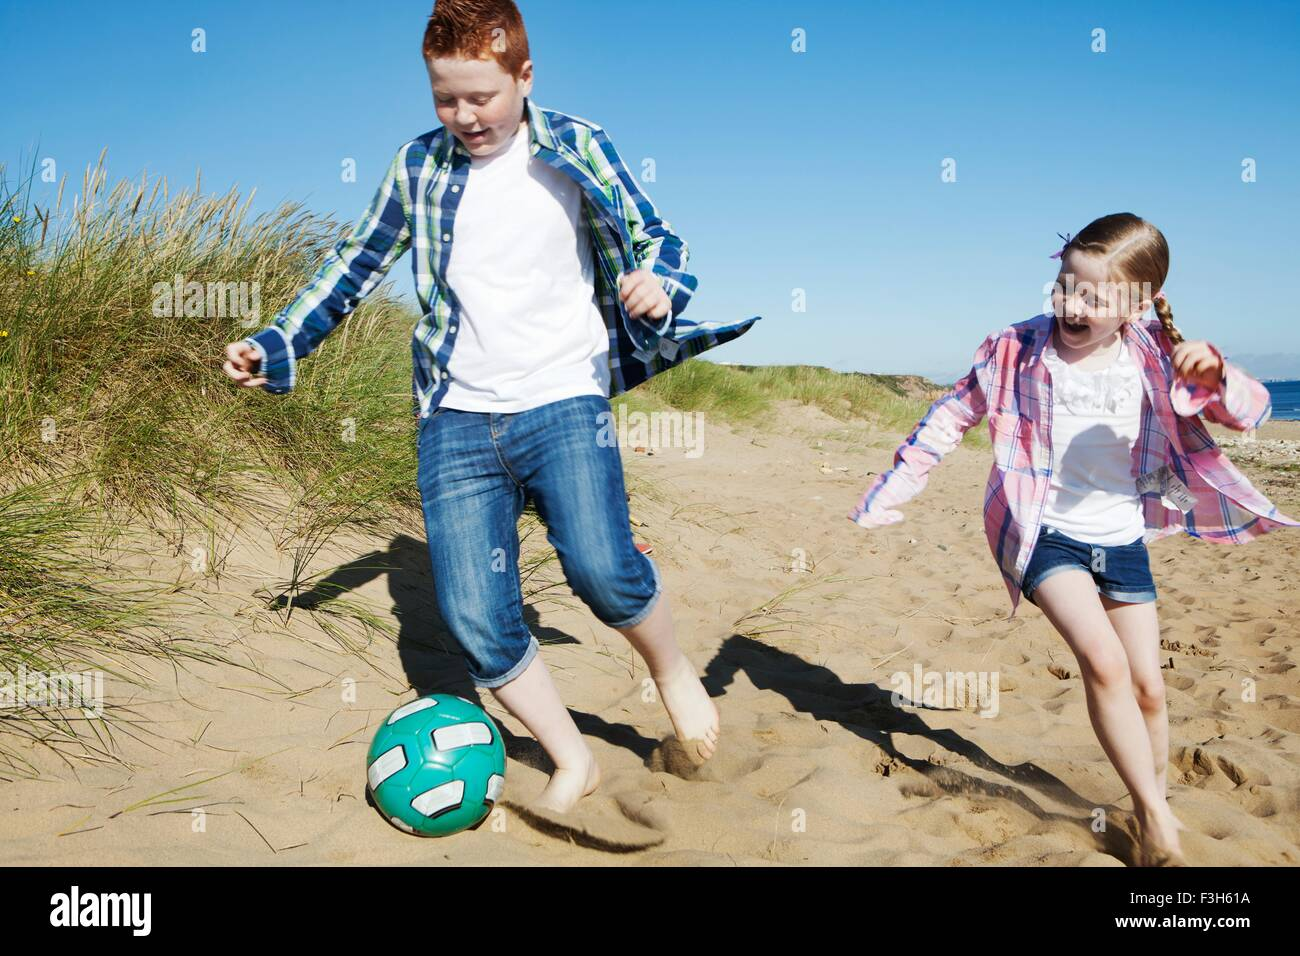 Girl and boy chasing football across sand, smiling Stock Photo